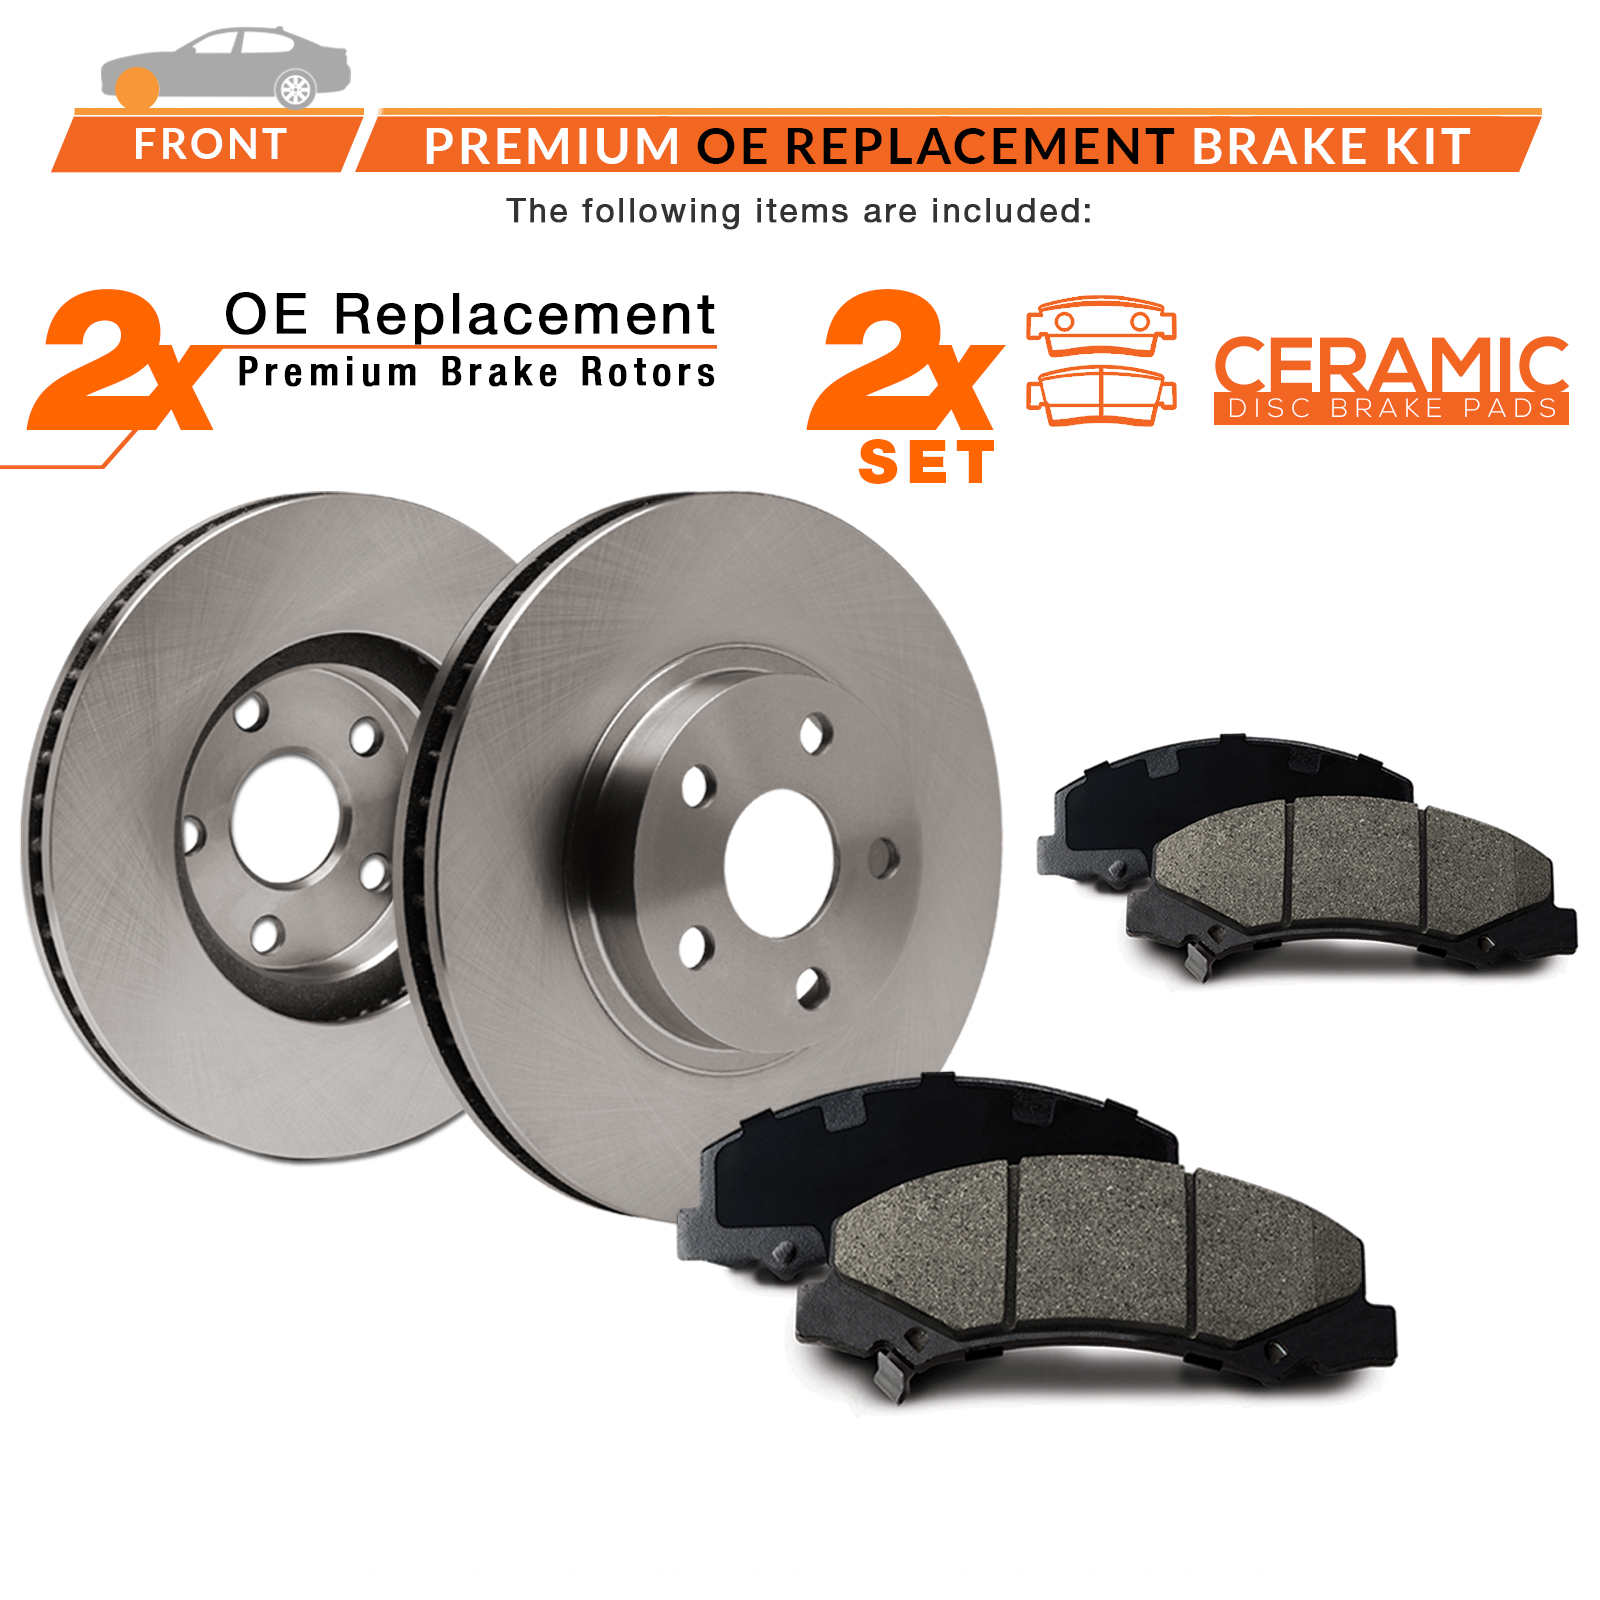 13-14-15-Fits-Hyundai-Elantra-Elantra-GT-OE-Replacement-Rotors-w-Ceramic-Pads-F